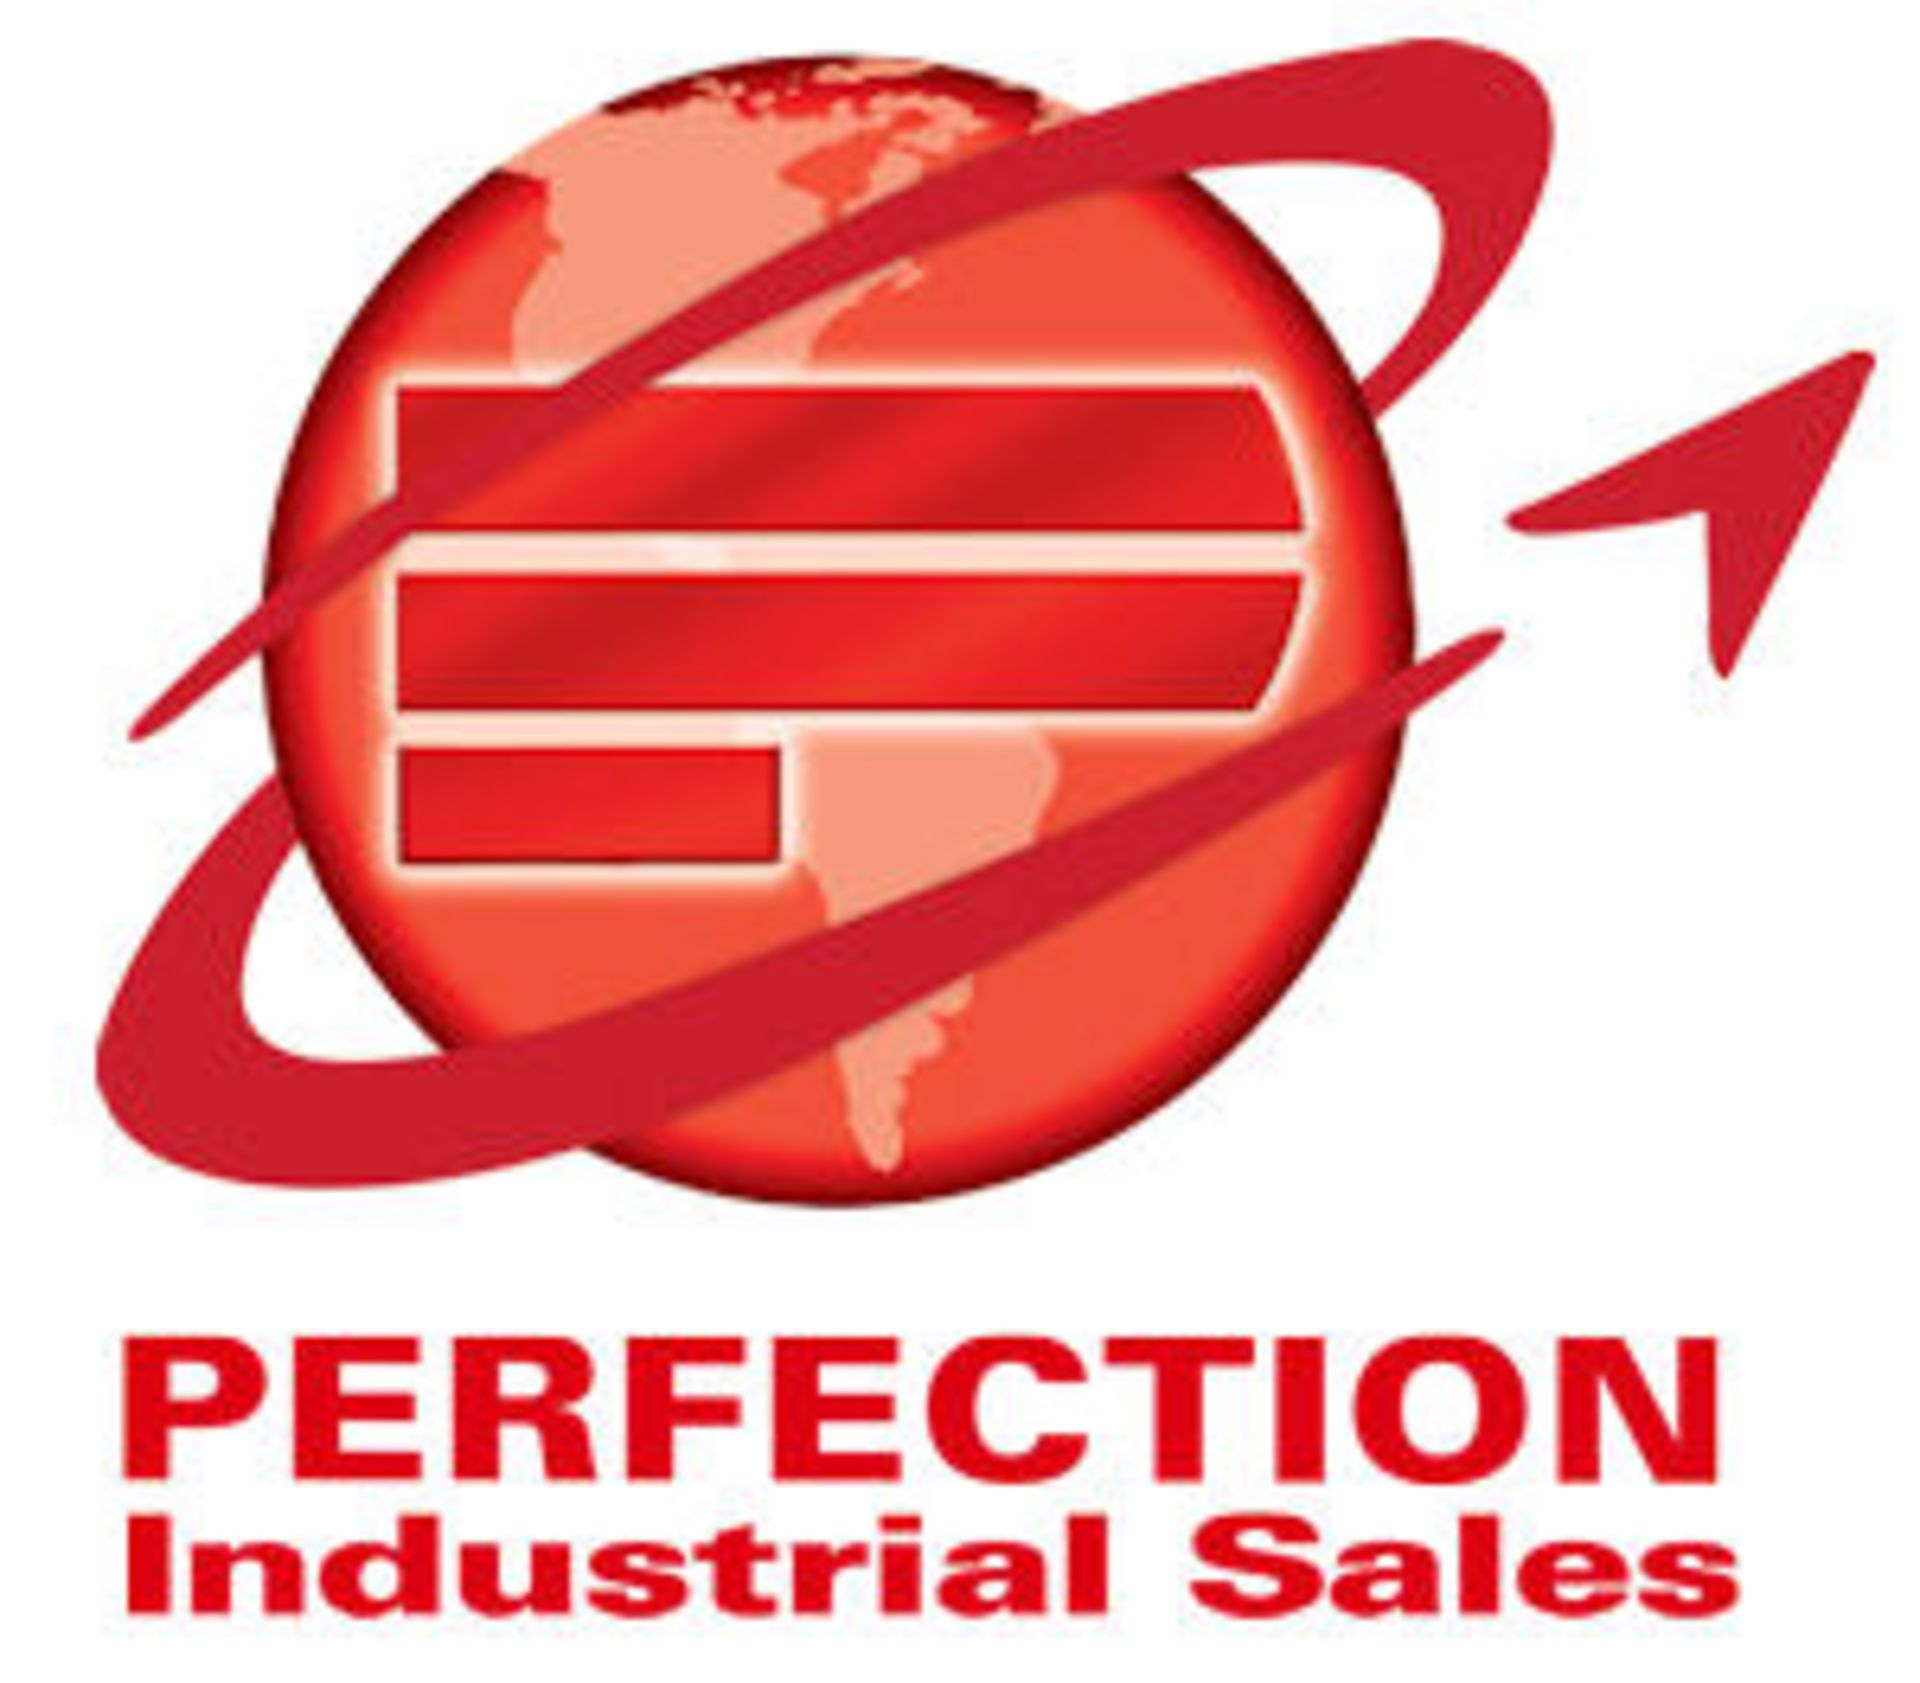 Lot 0B - THIS AUCTION IS PROUDLY CONDUCTED IN CONJUNCTION WITH PERFECTION INDUSTRIAL SALES